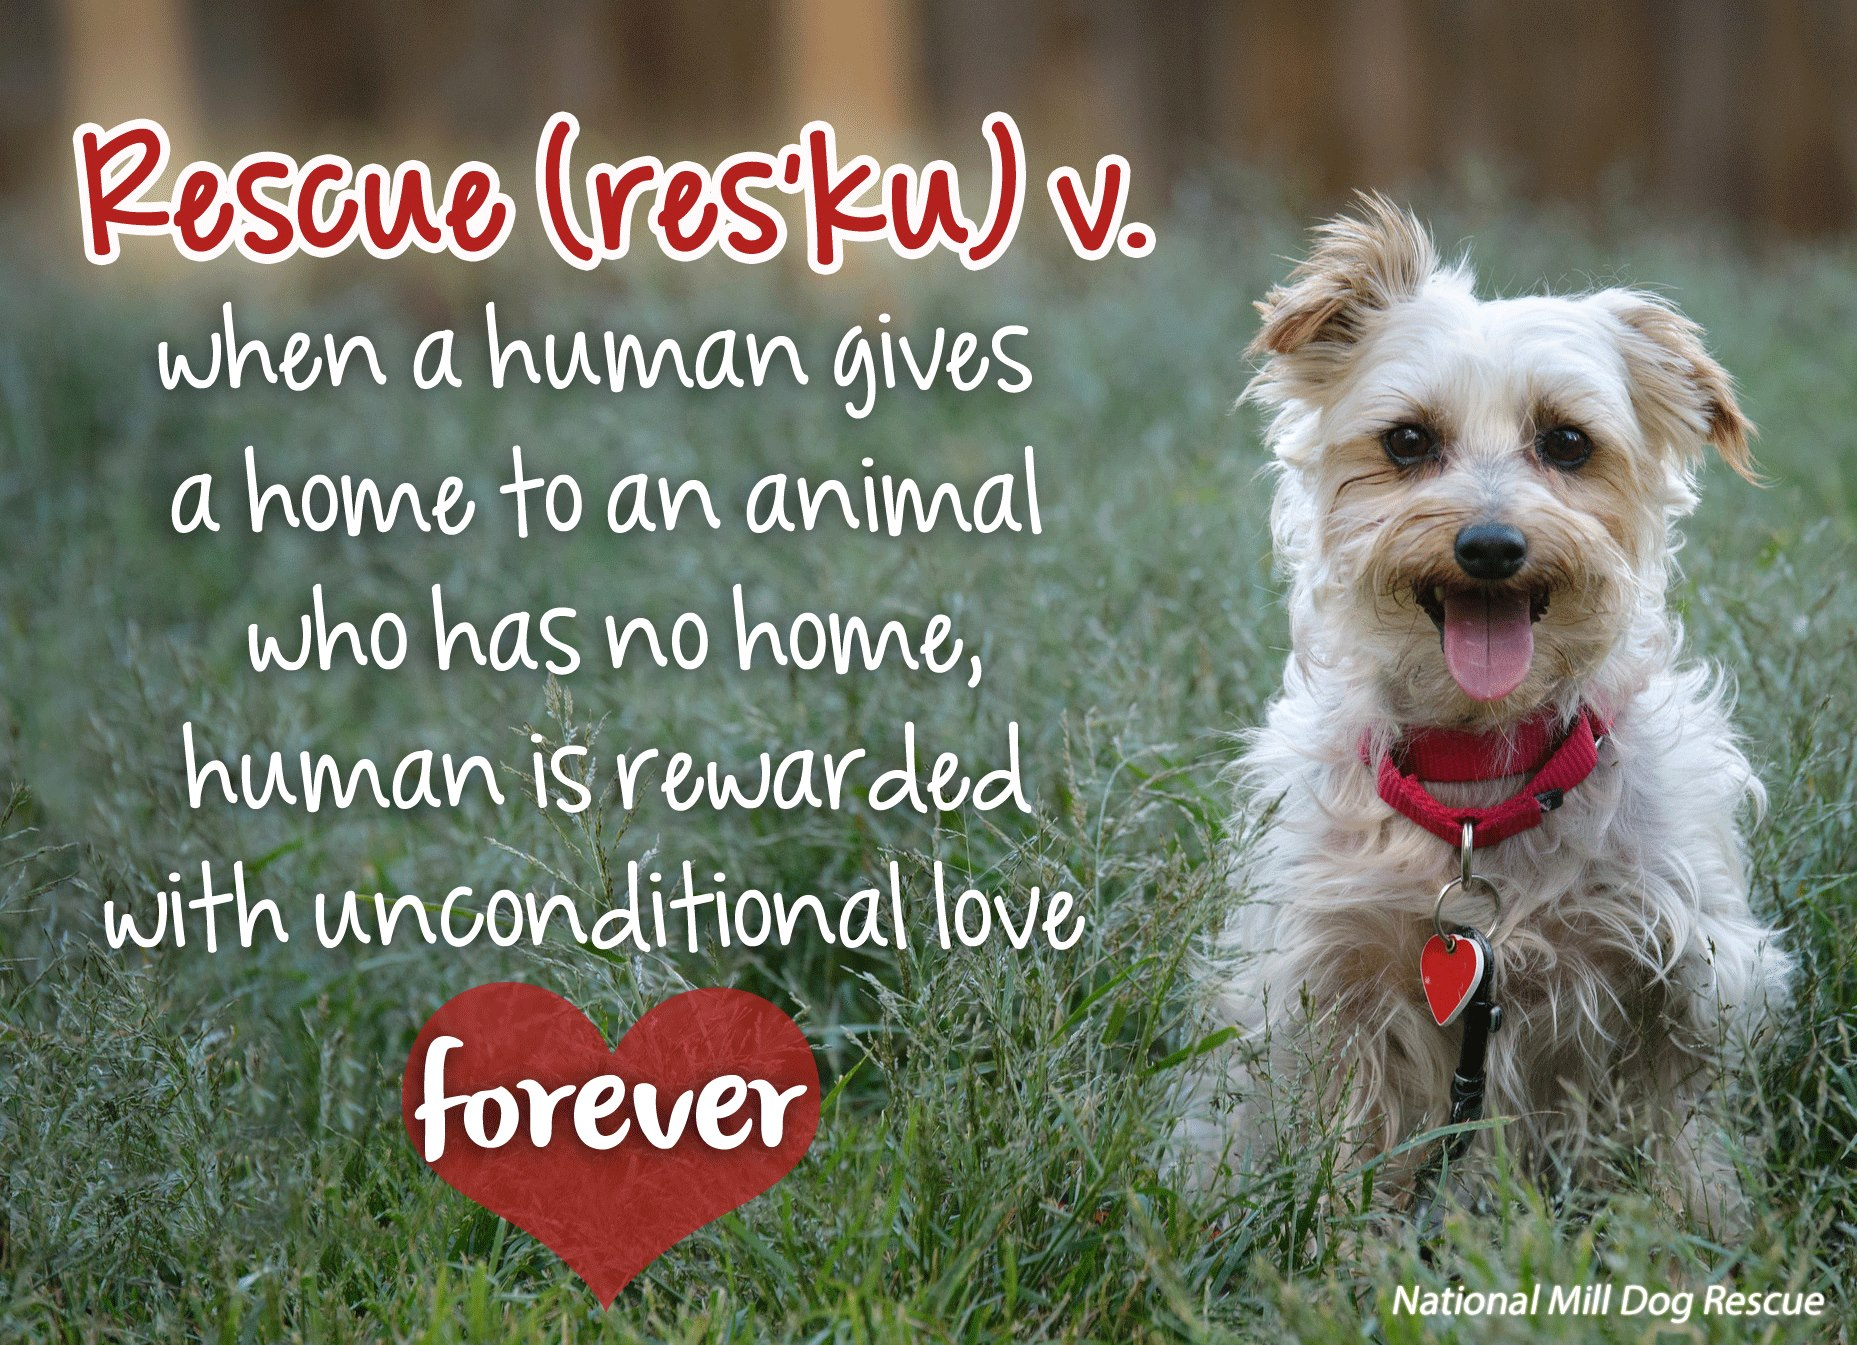 Unconditional love… forever!